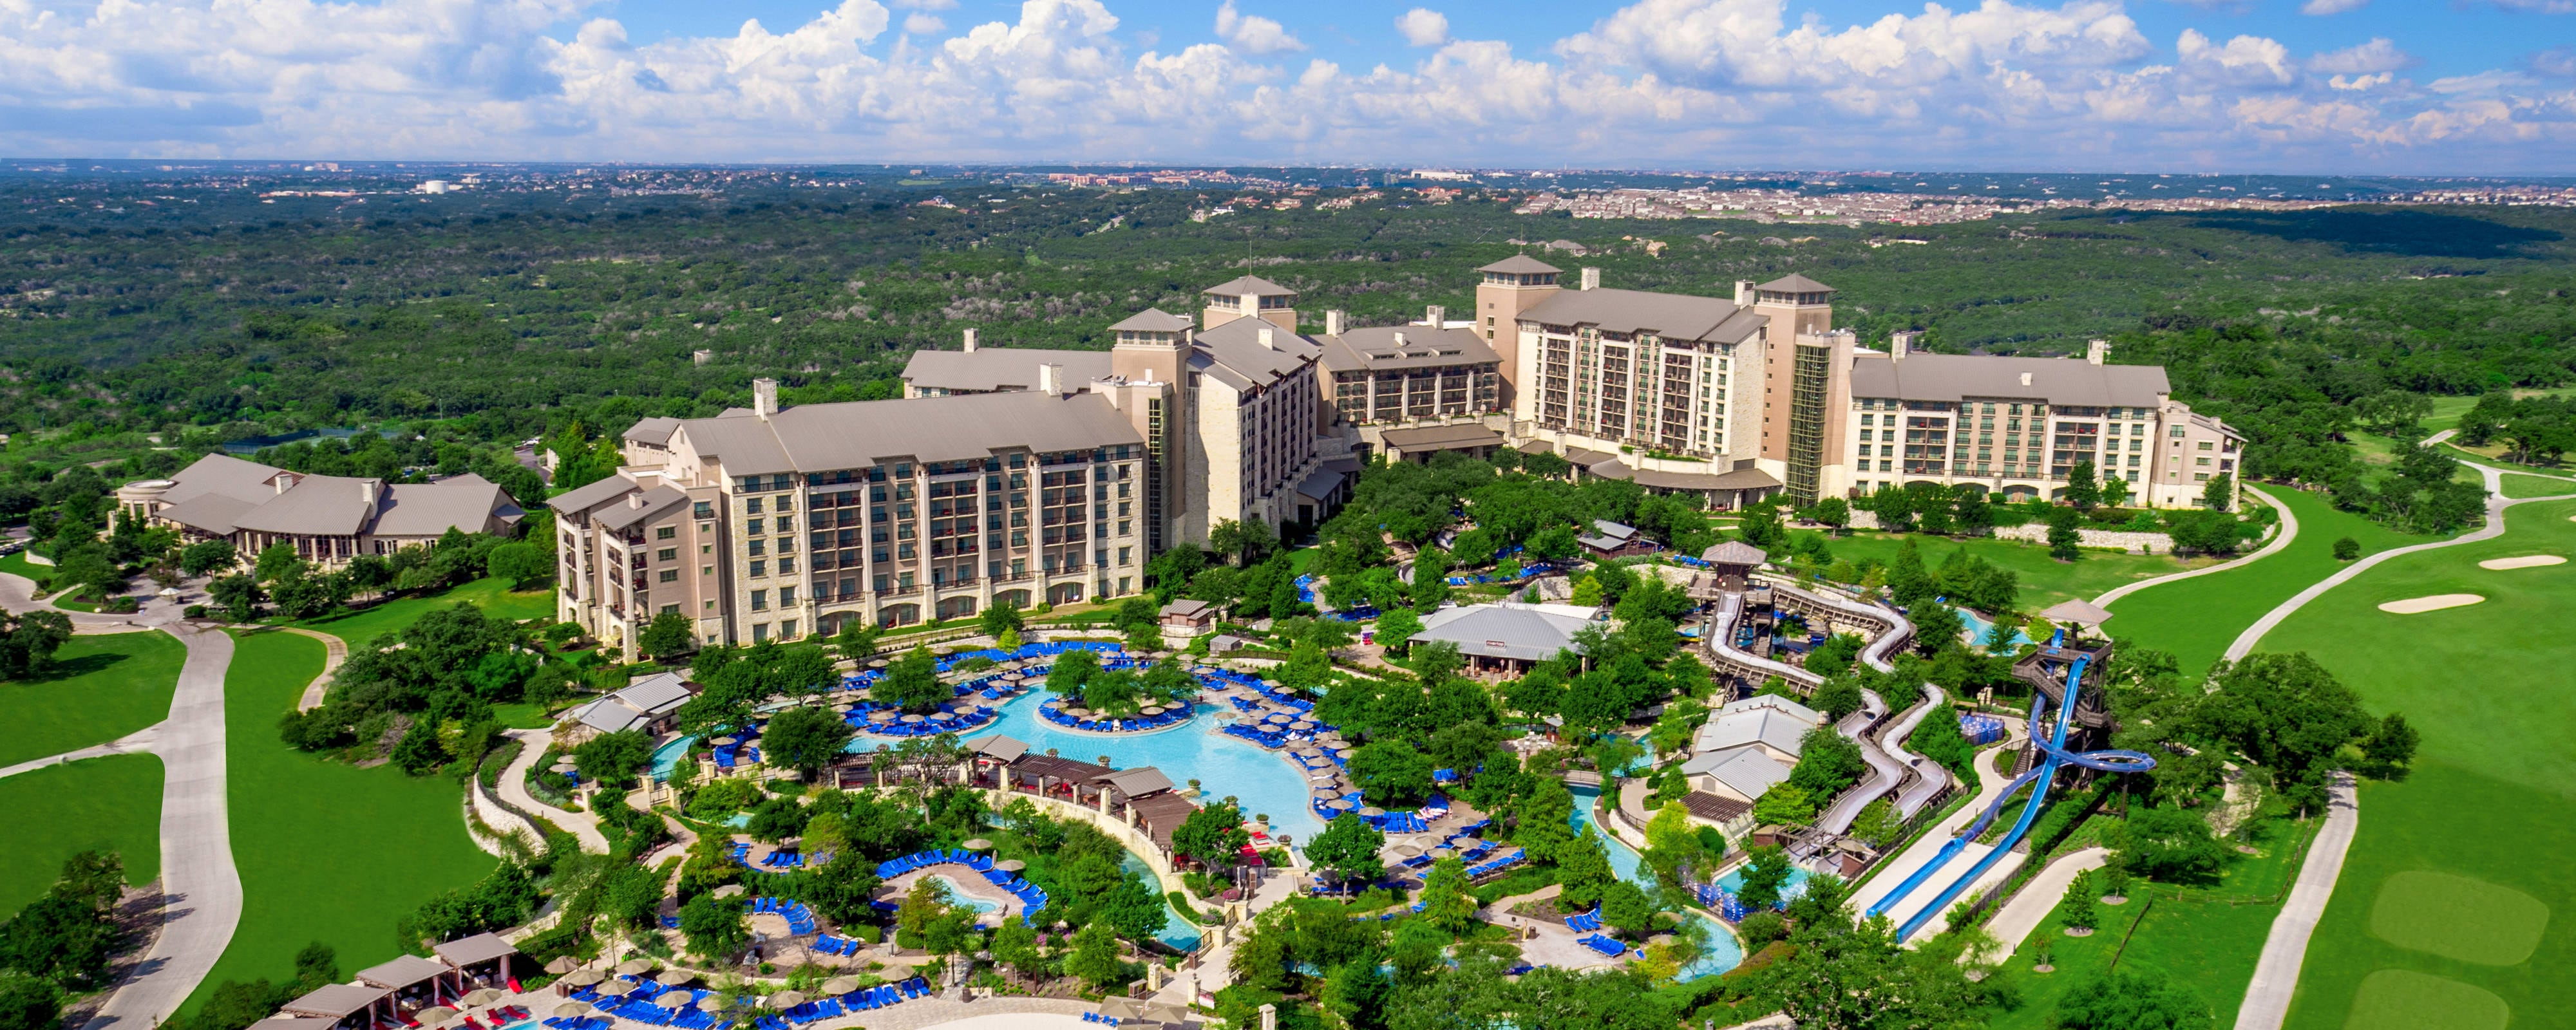 Texas Hill Country Resort In San Antonio Tx Jw Marriott